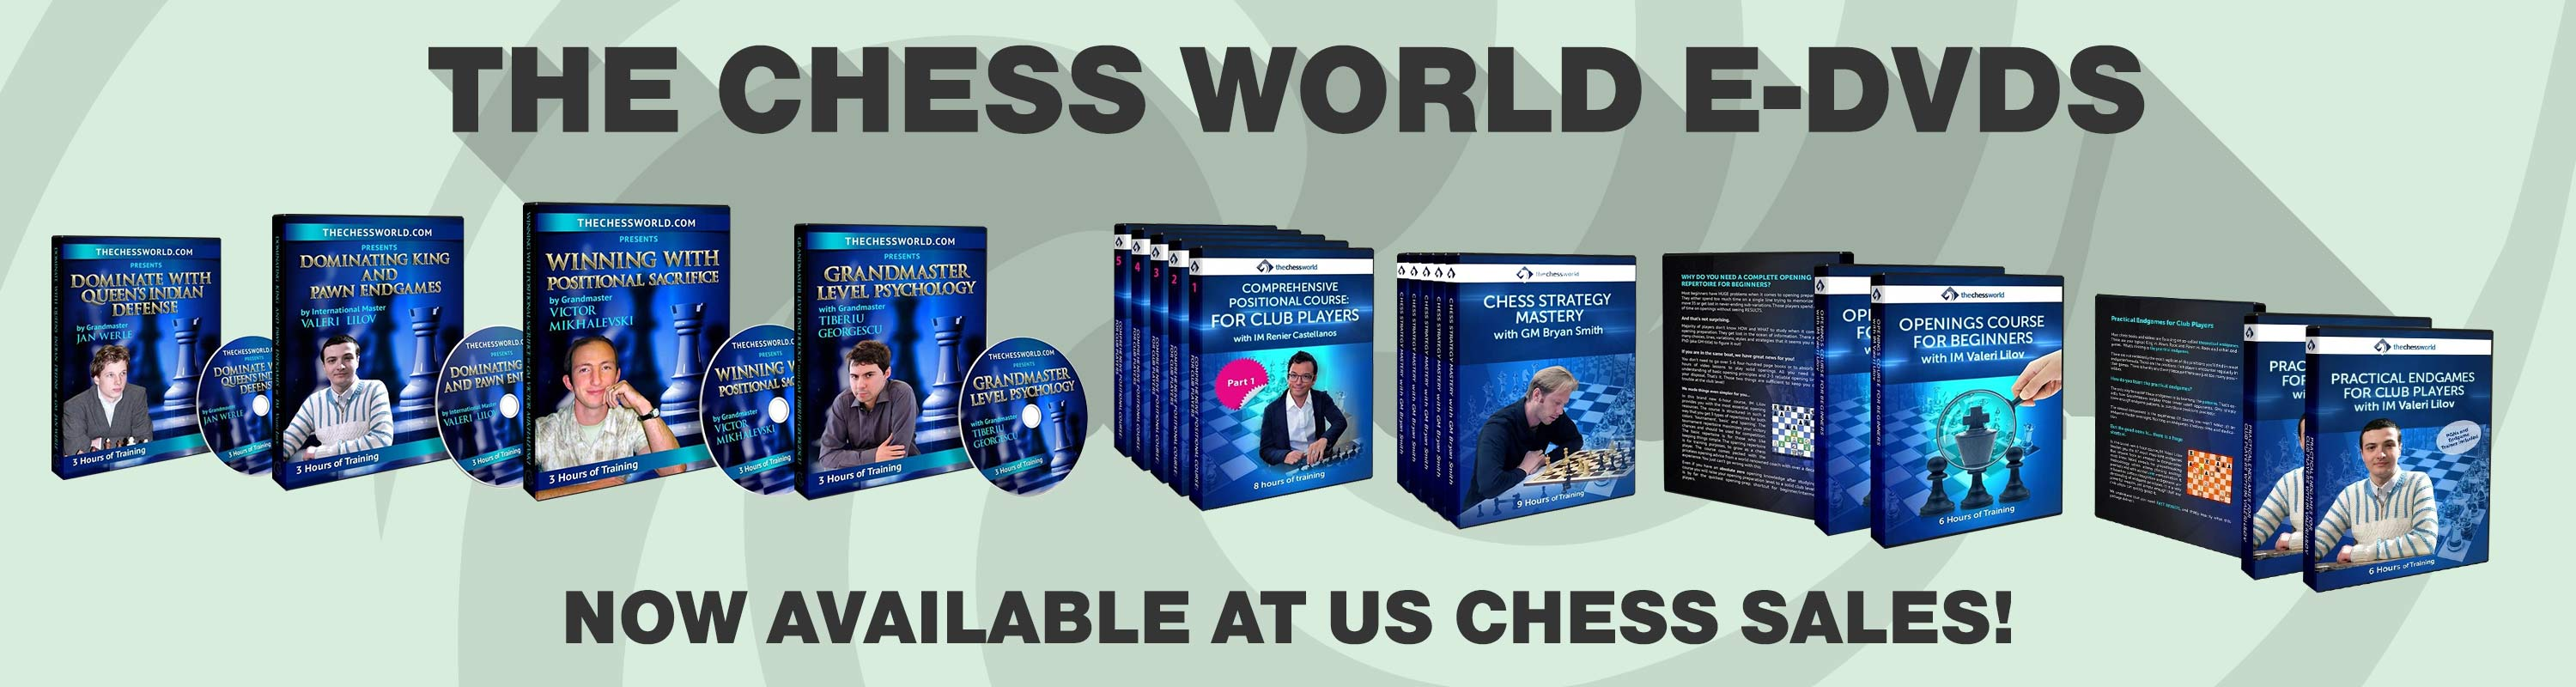 The Chess World E-DVDs Now Available at US Chess Sales!